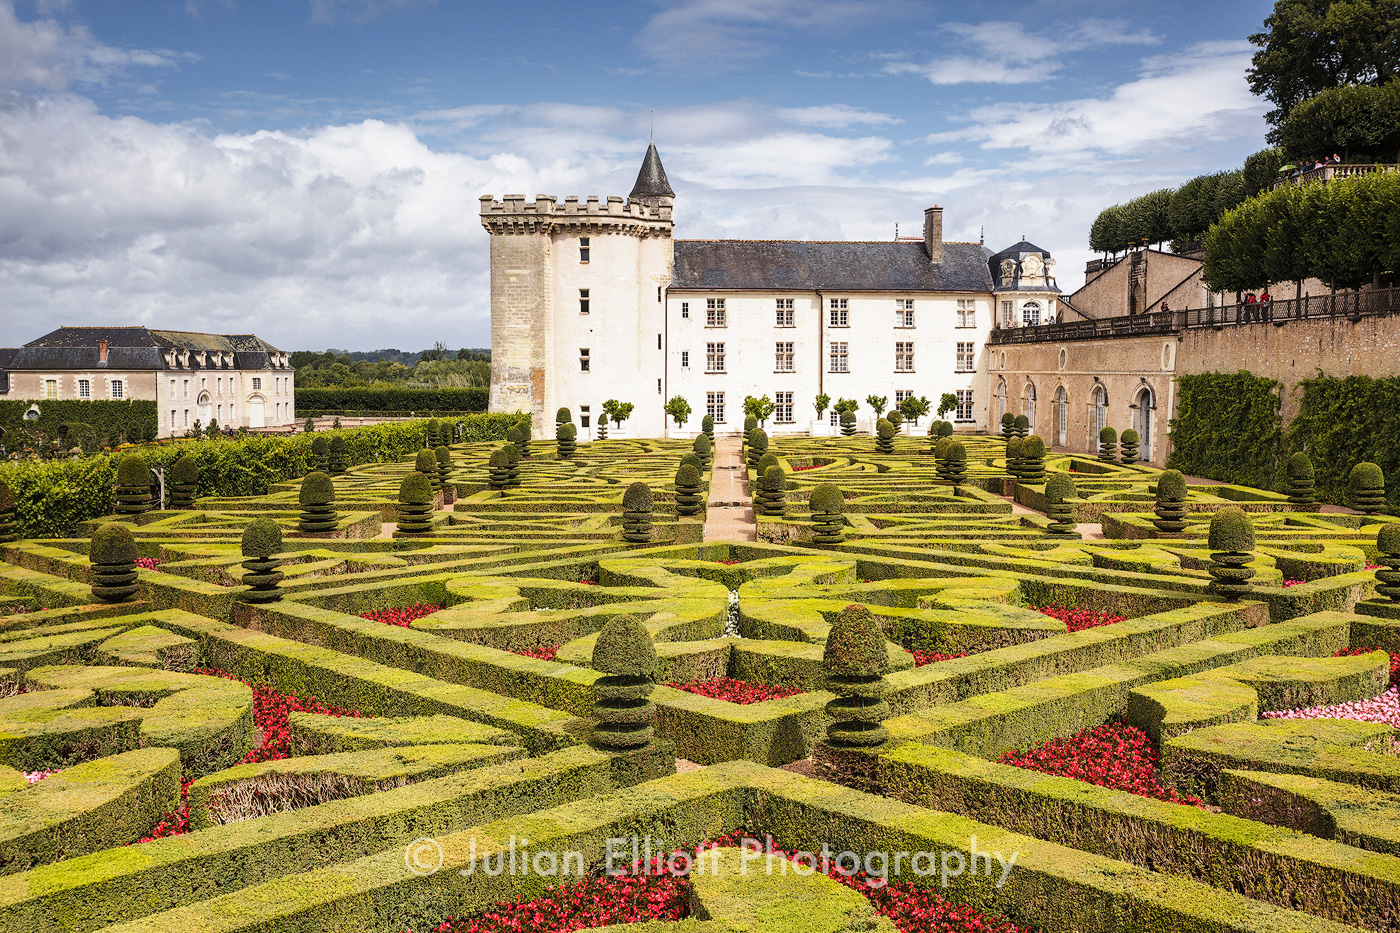 The beautiful castle and gardens at Villandry